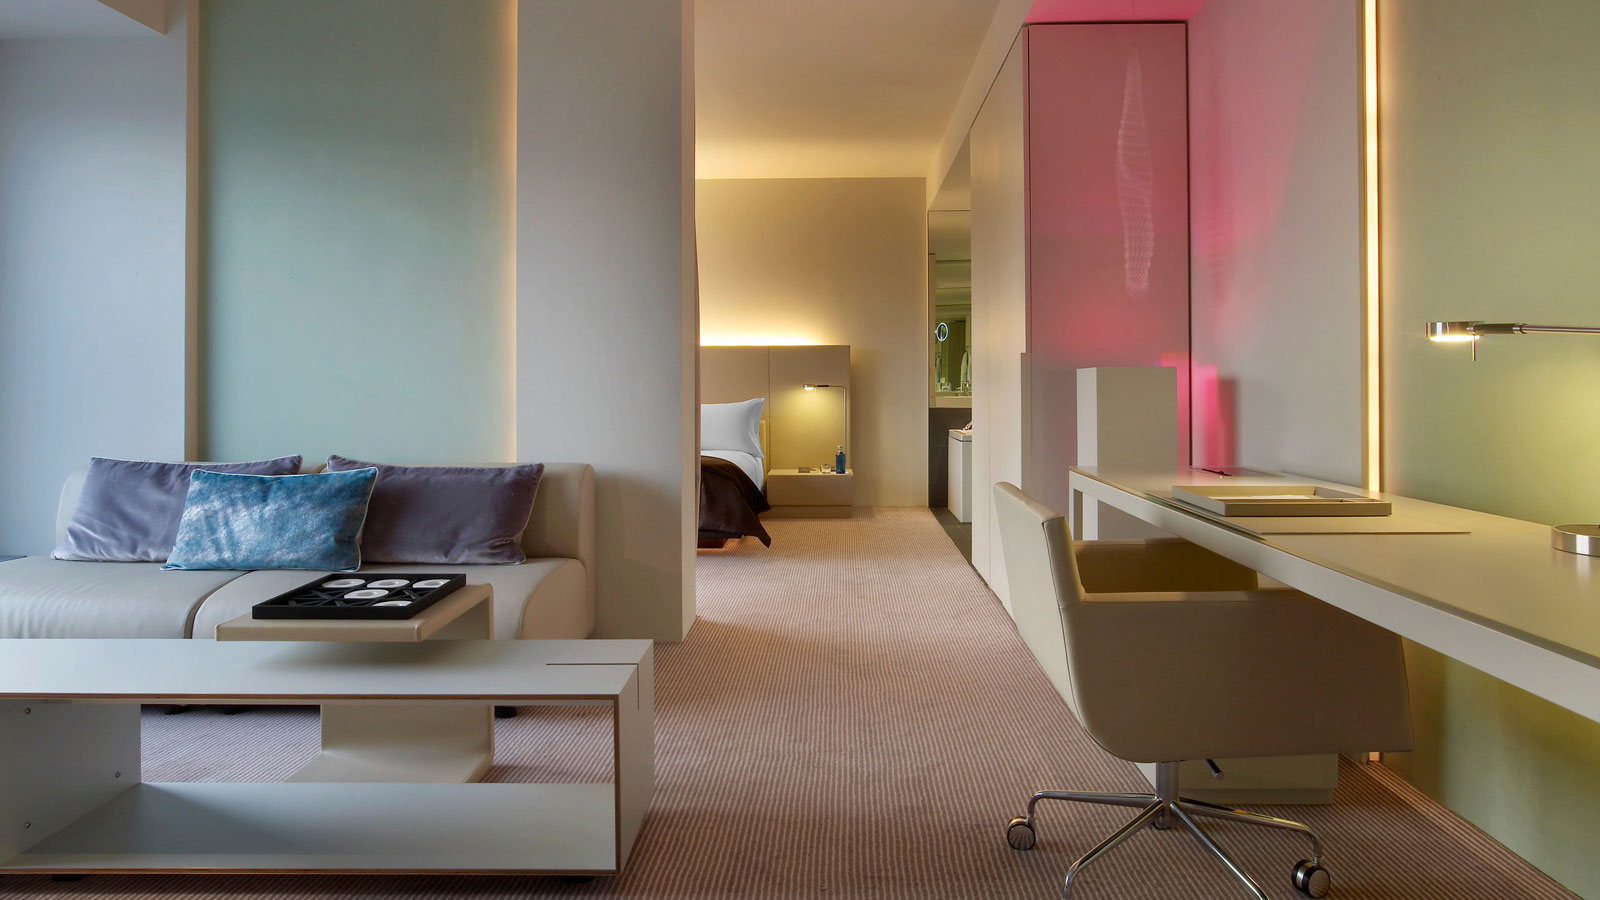 The W Hotel In Barcelona By Ricardo Bofill Architecture Math Wallpaper Golden Find Free HD for Desktop [pastnedes.tk]